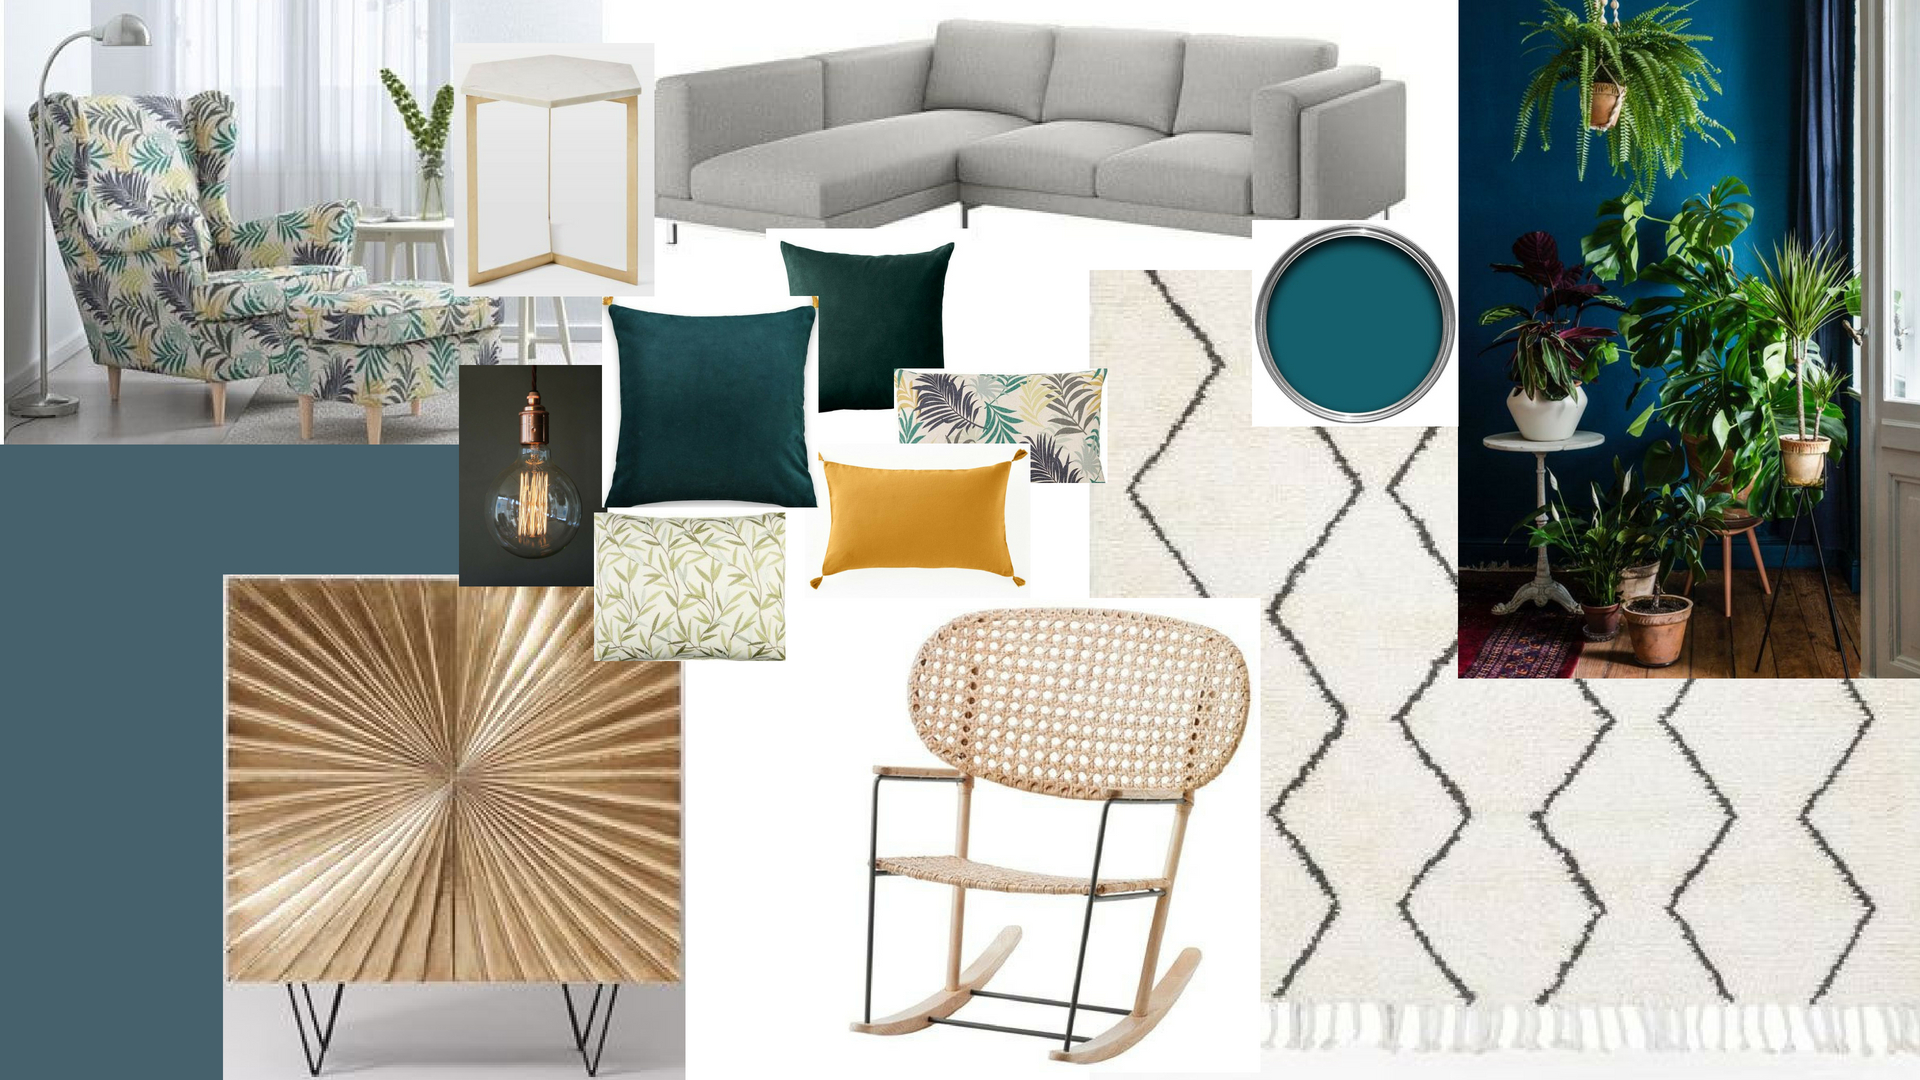 You can find all links to products on here via my pinterest board 'Living Room' - linked below.